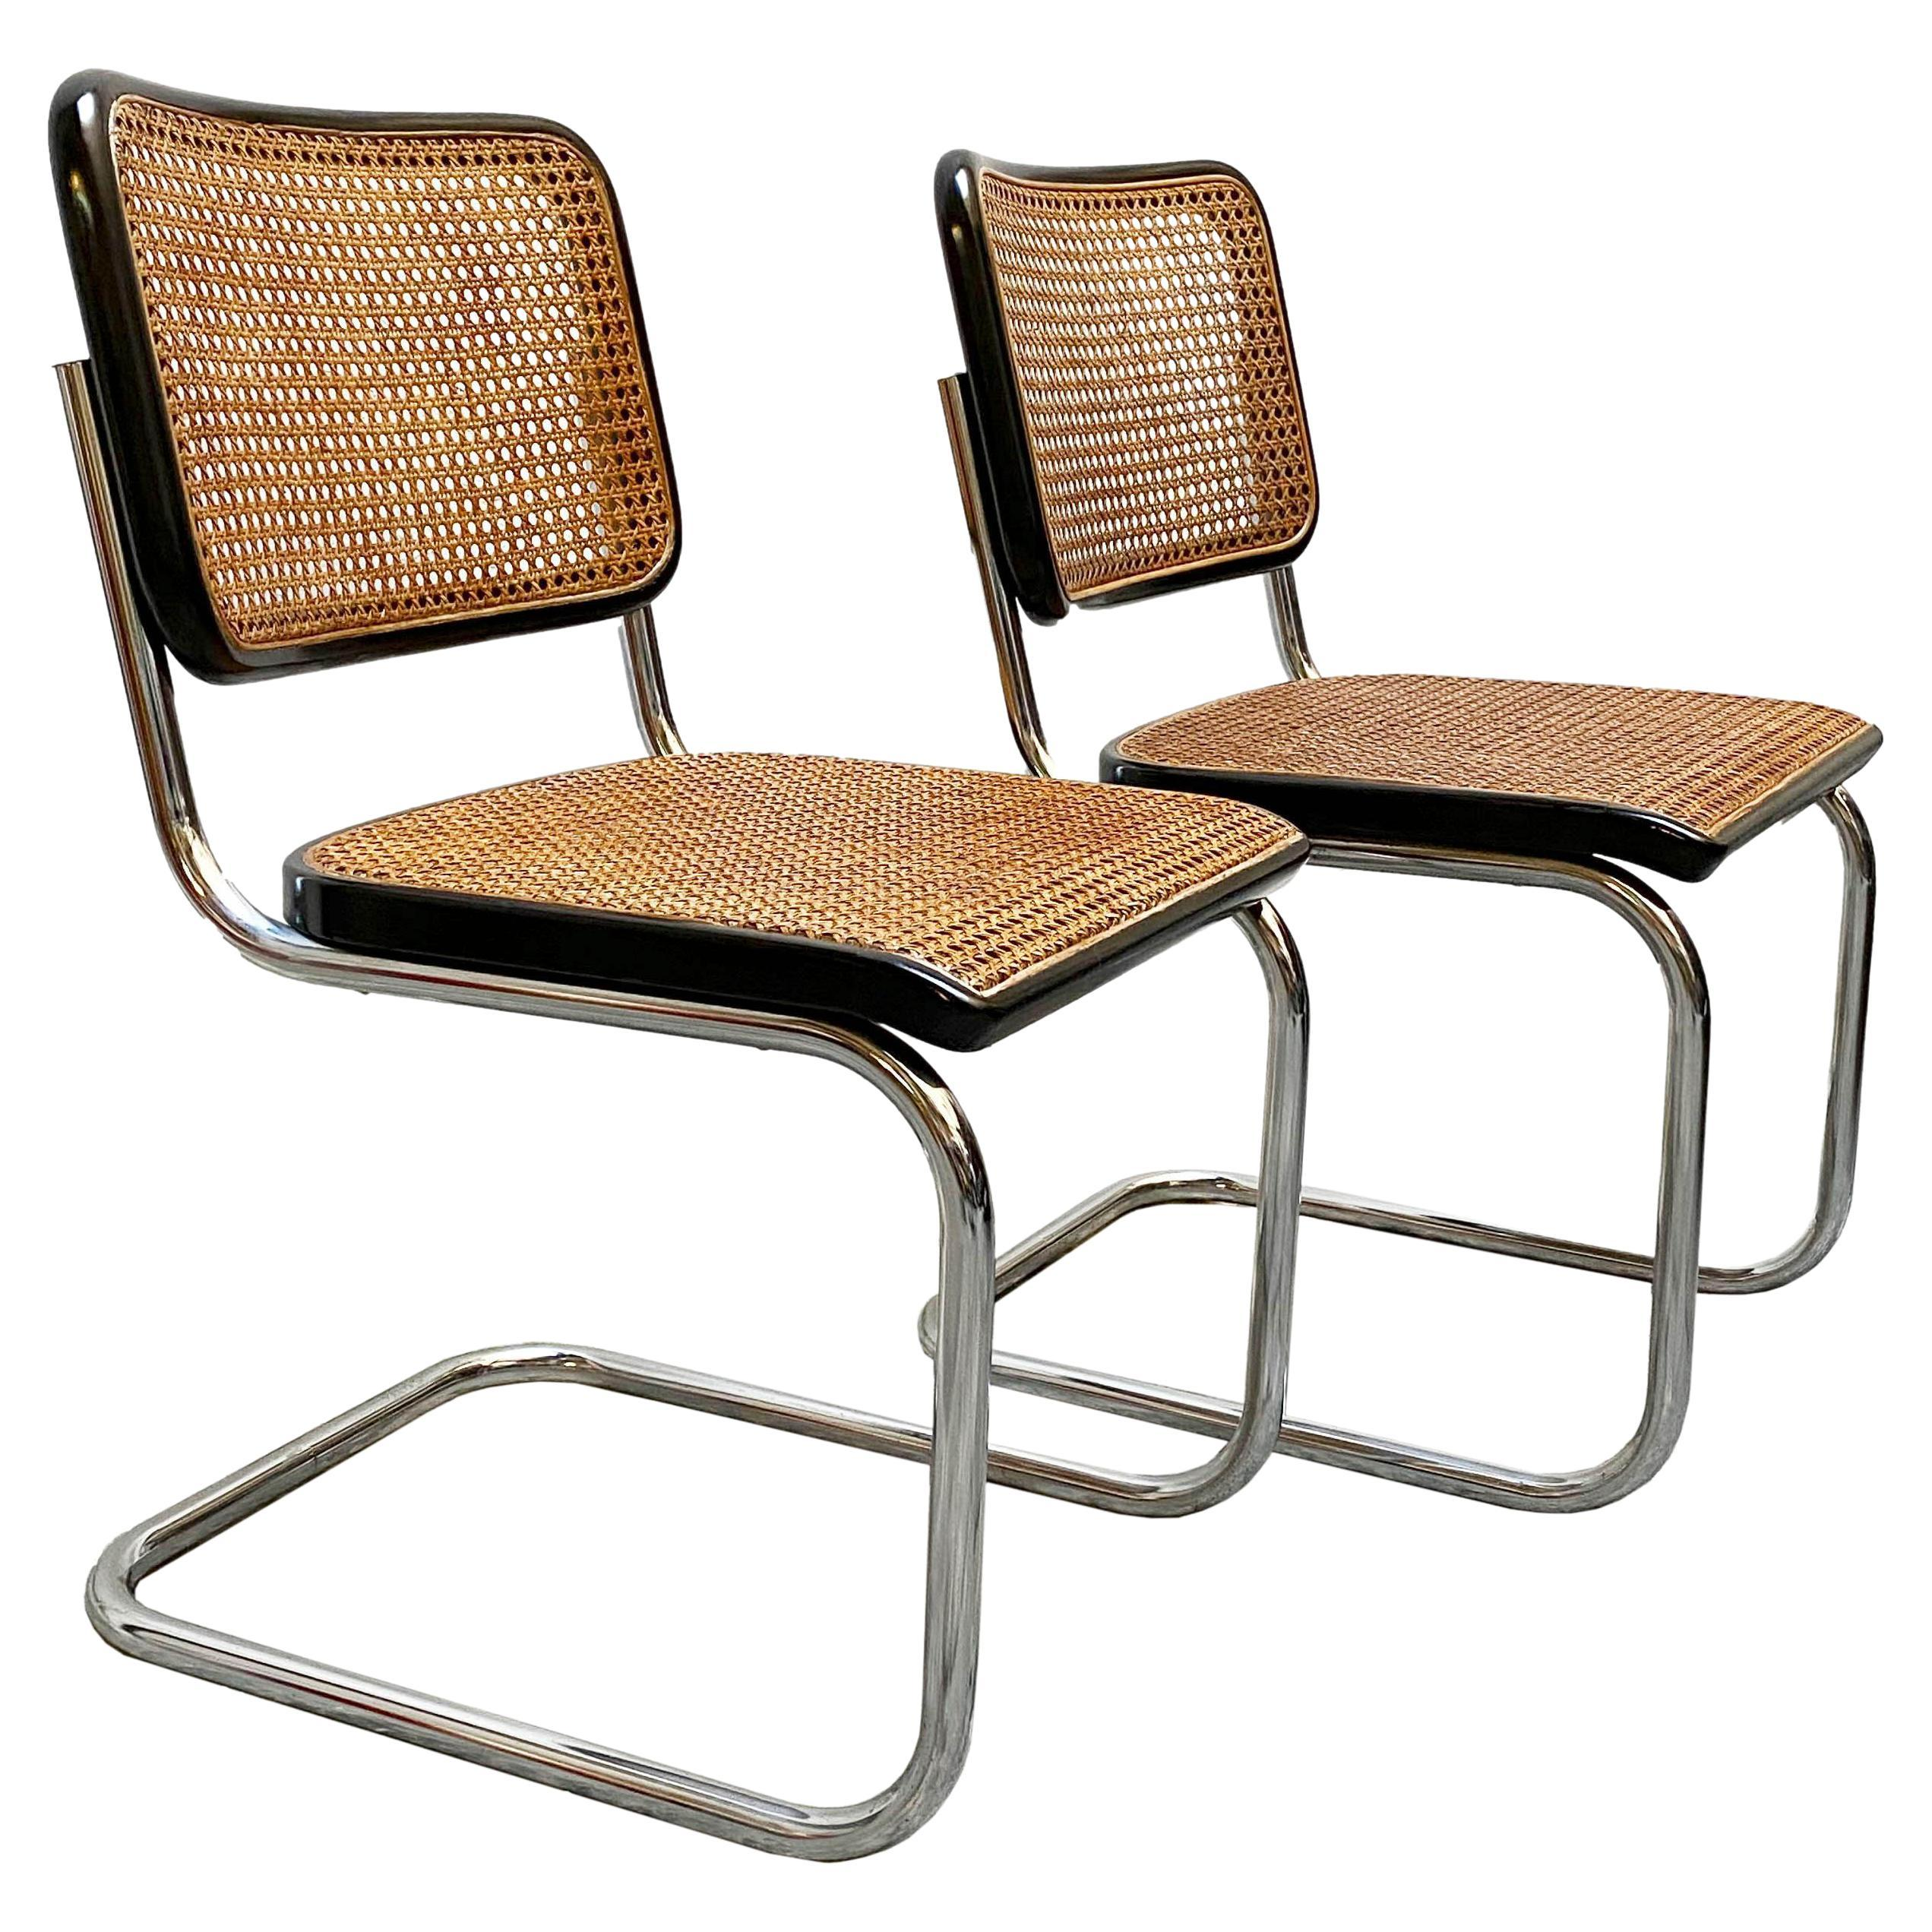 """Mercel Breuer for Thonet """"Cesca"""" Chairs, Italy, 1950s"""